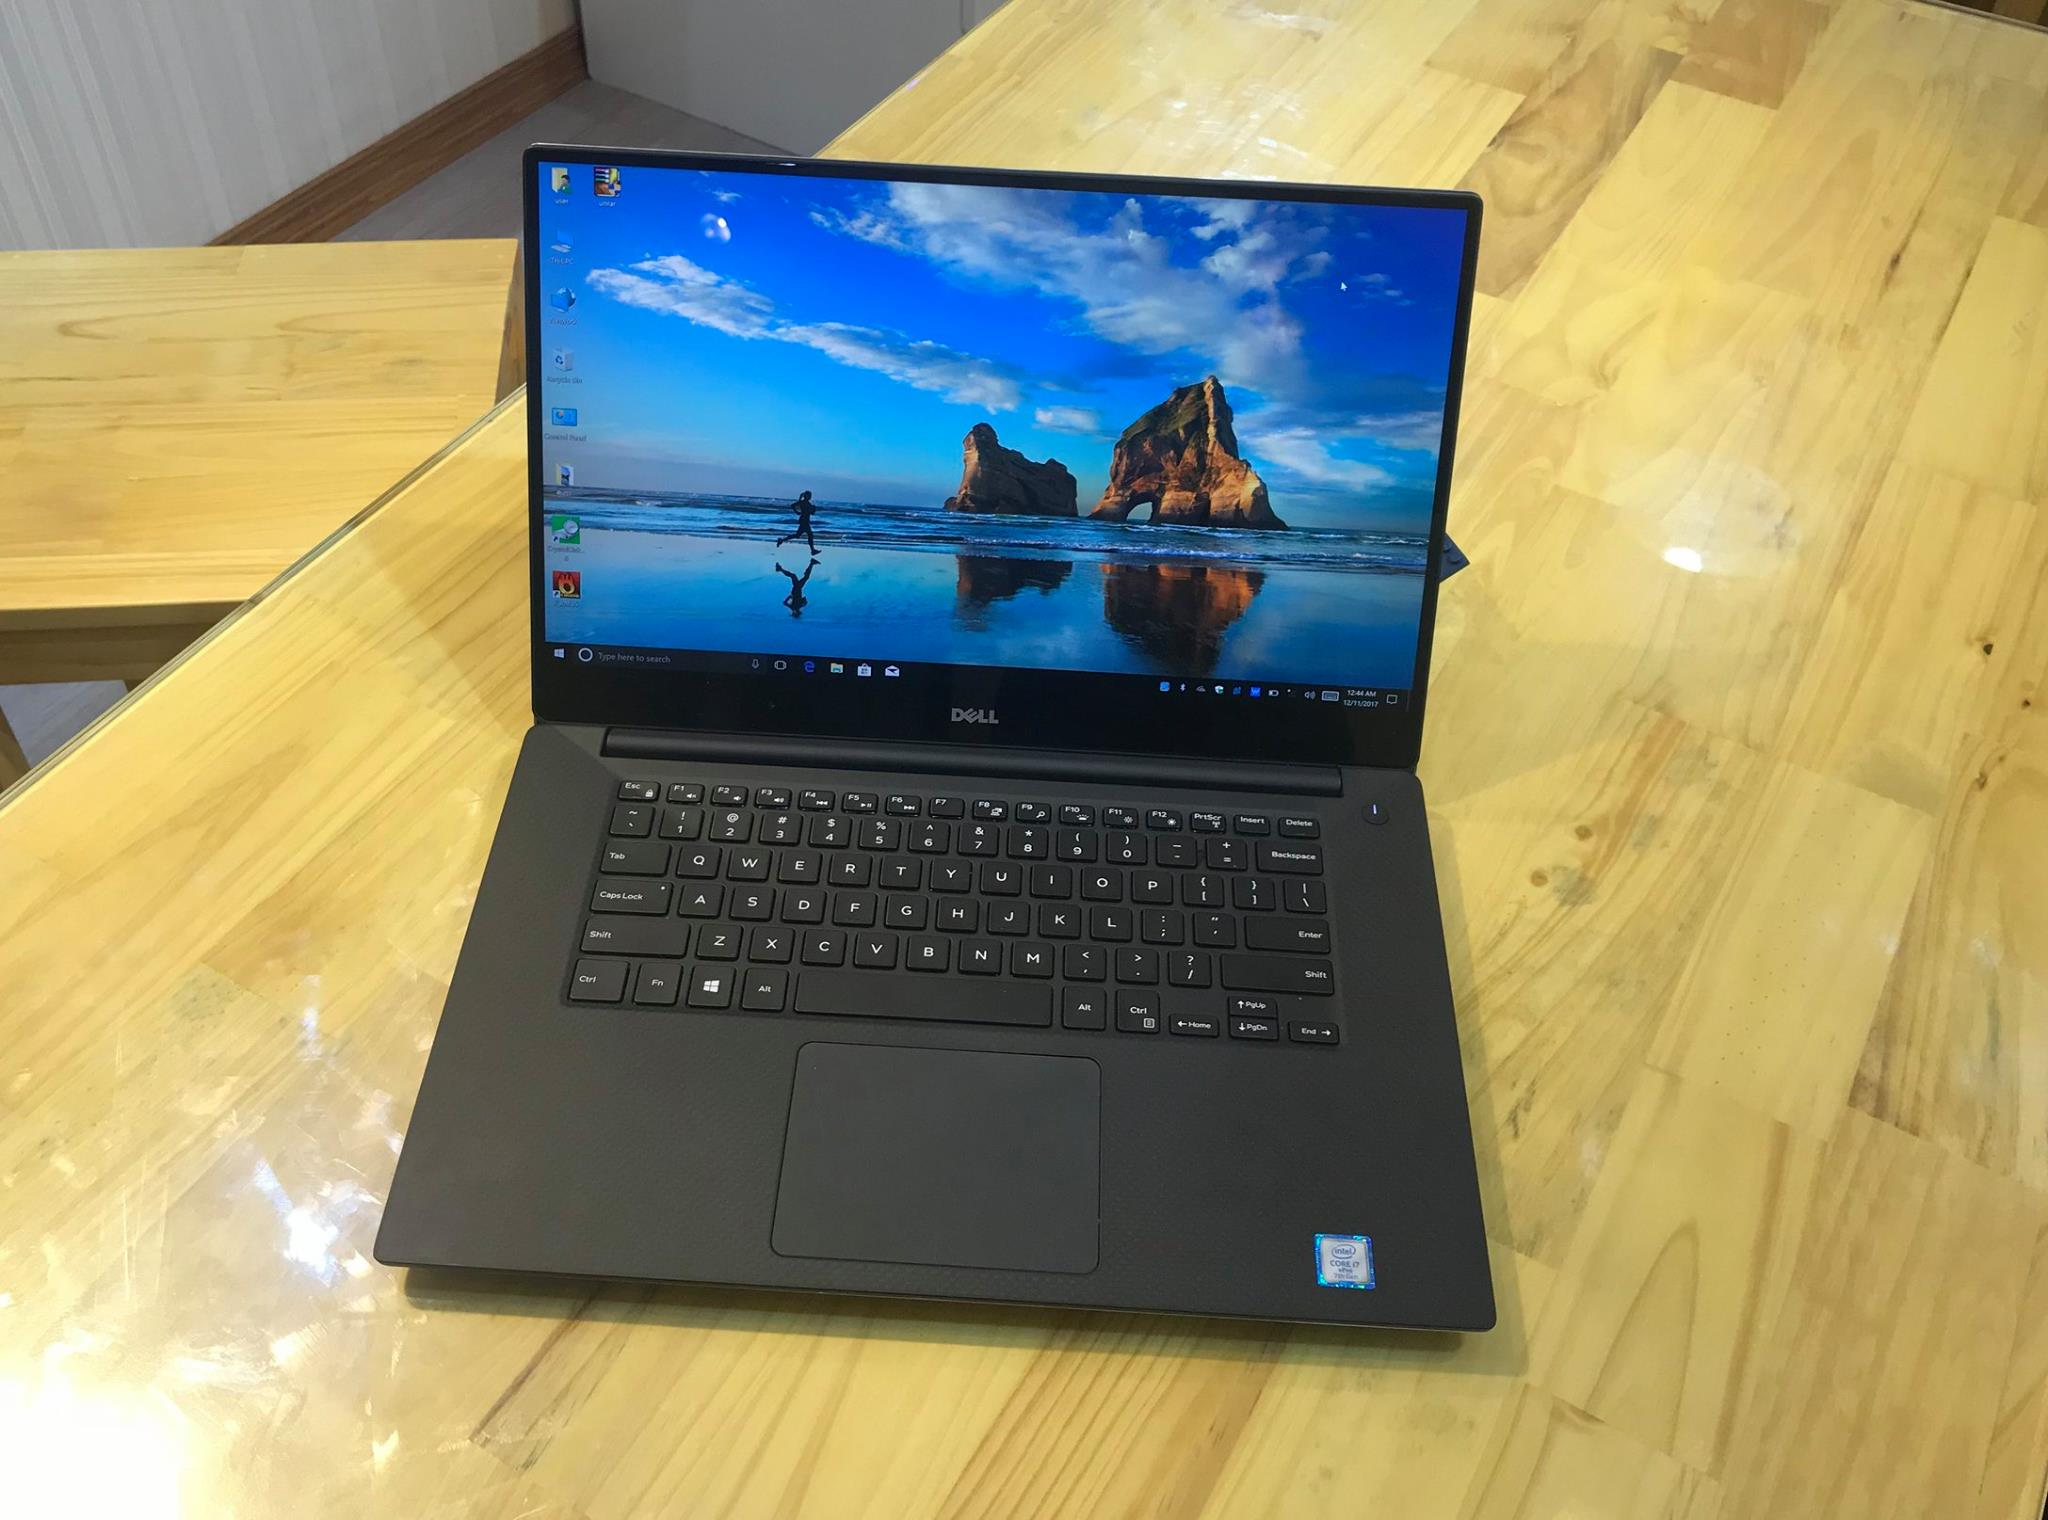 Laptop Dell Precision 5520 .jpg